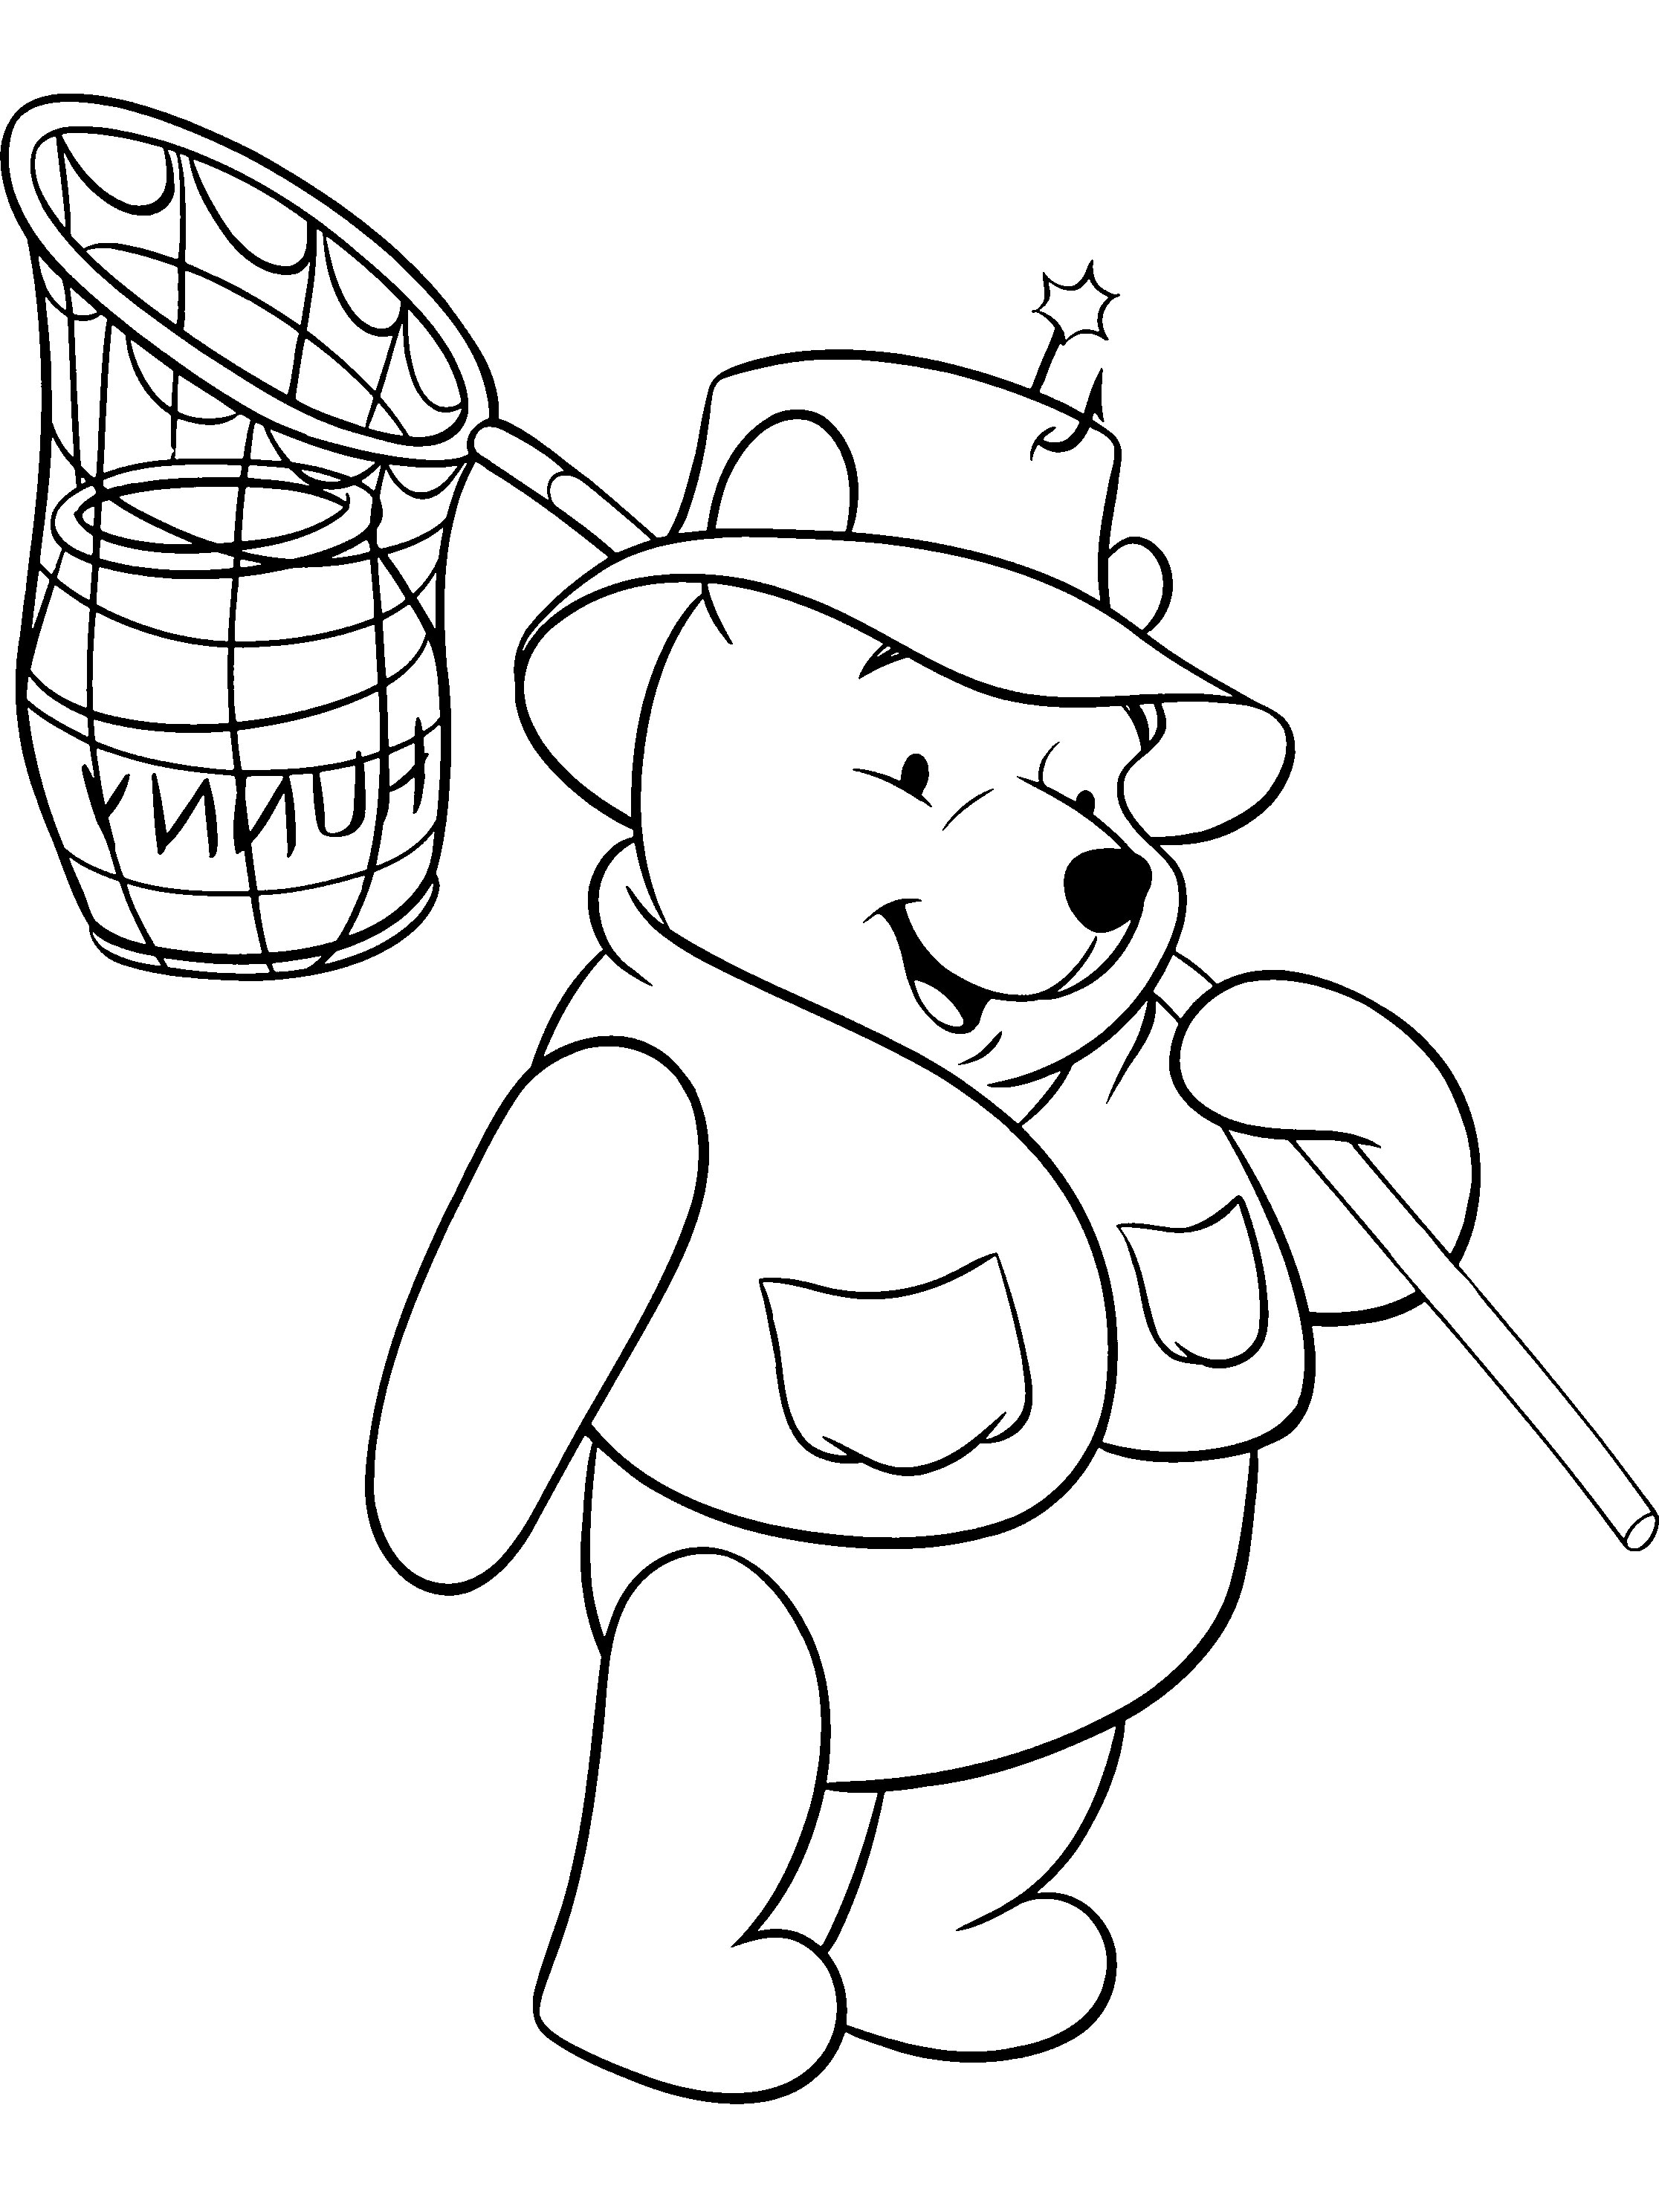 It's just a picture of Lucrative Winnie the Pooh Free Printables